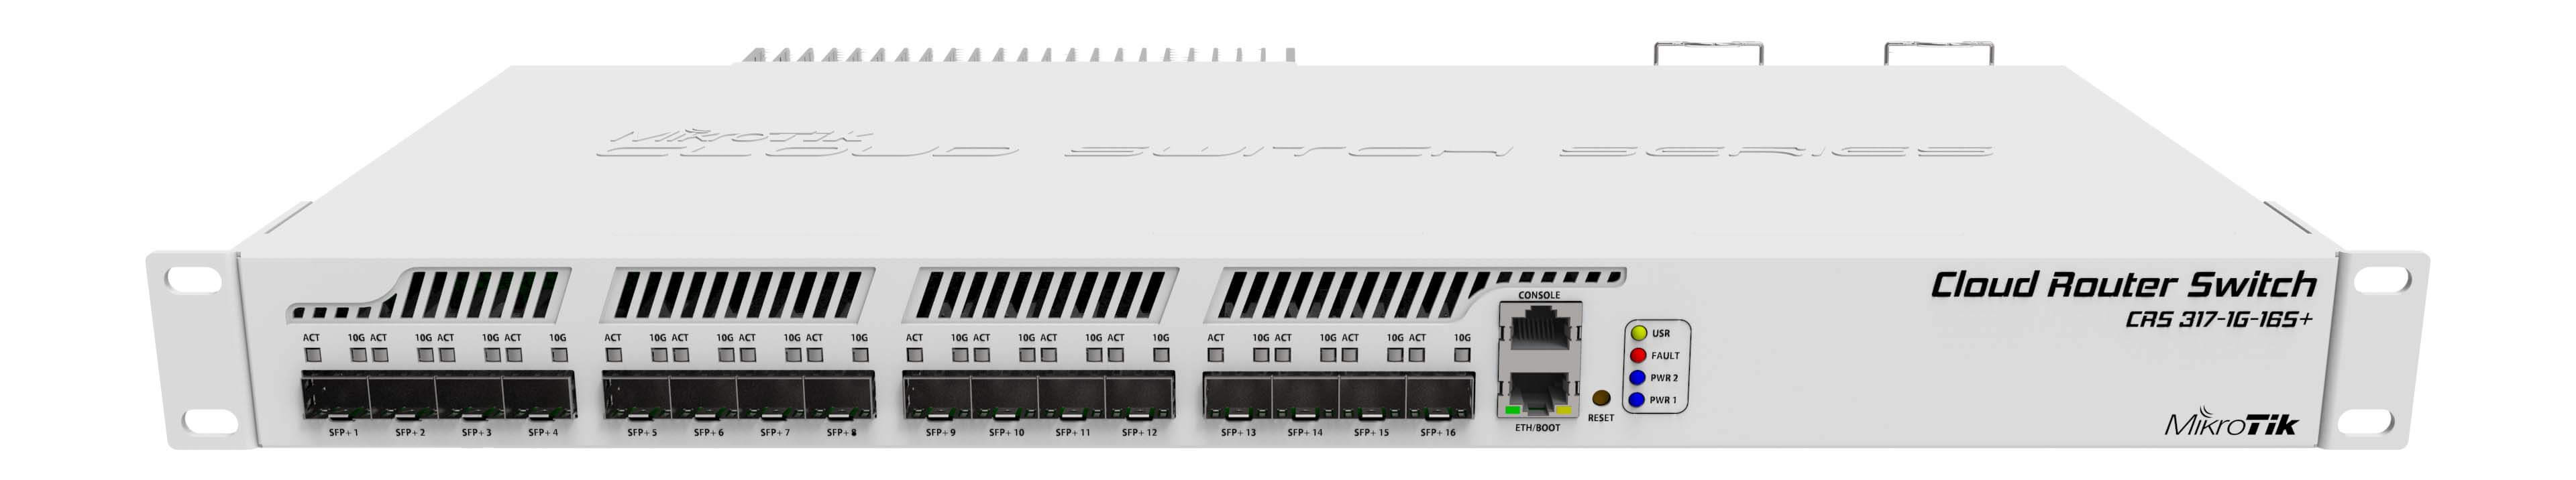 MikroTik CRS317-1G-16S+RM Router - Switch